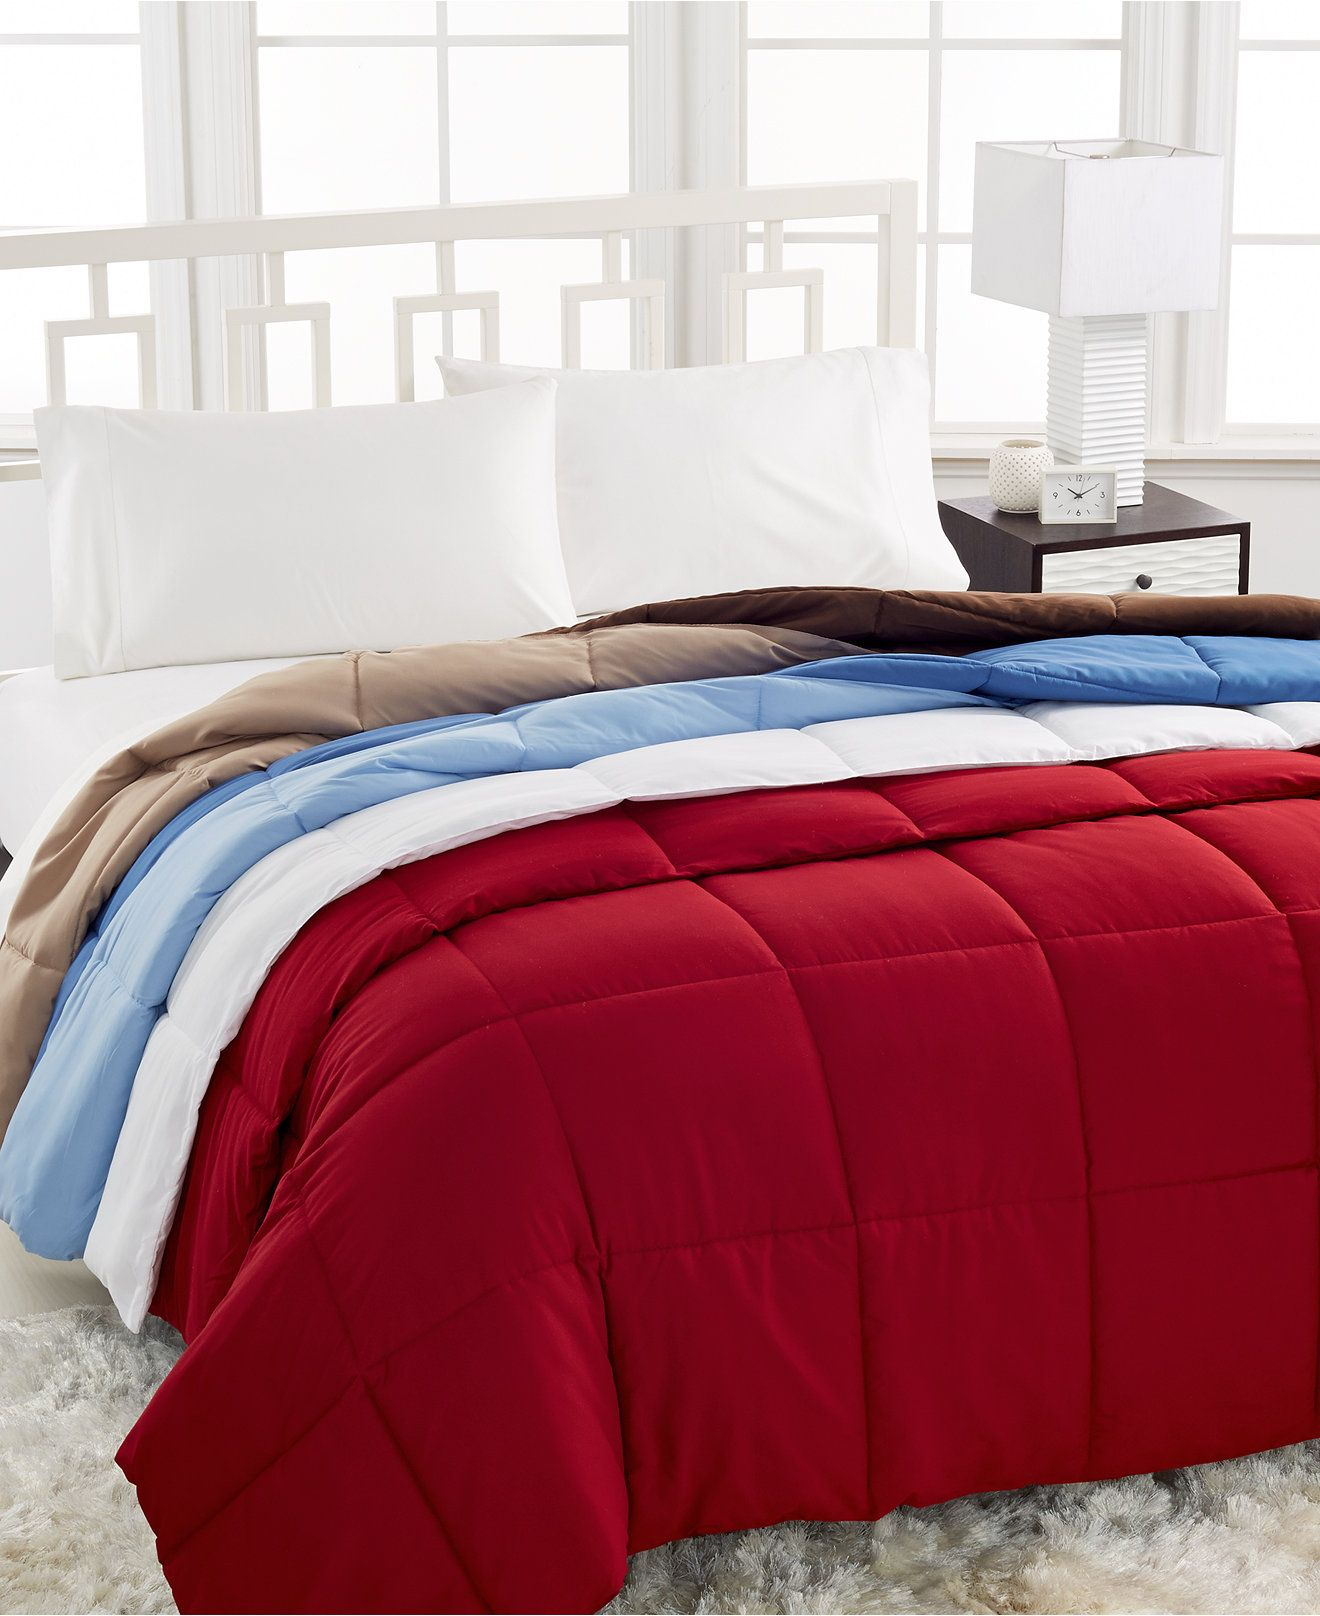 Home Design Down Alternative Comforters - Sale & Clearance - For The Home - Macy's